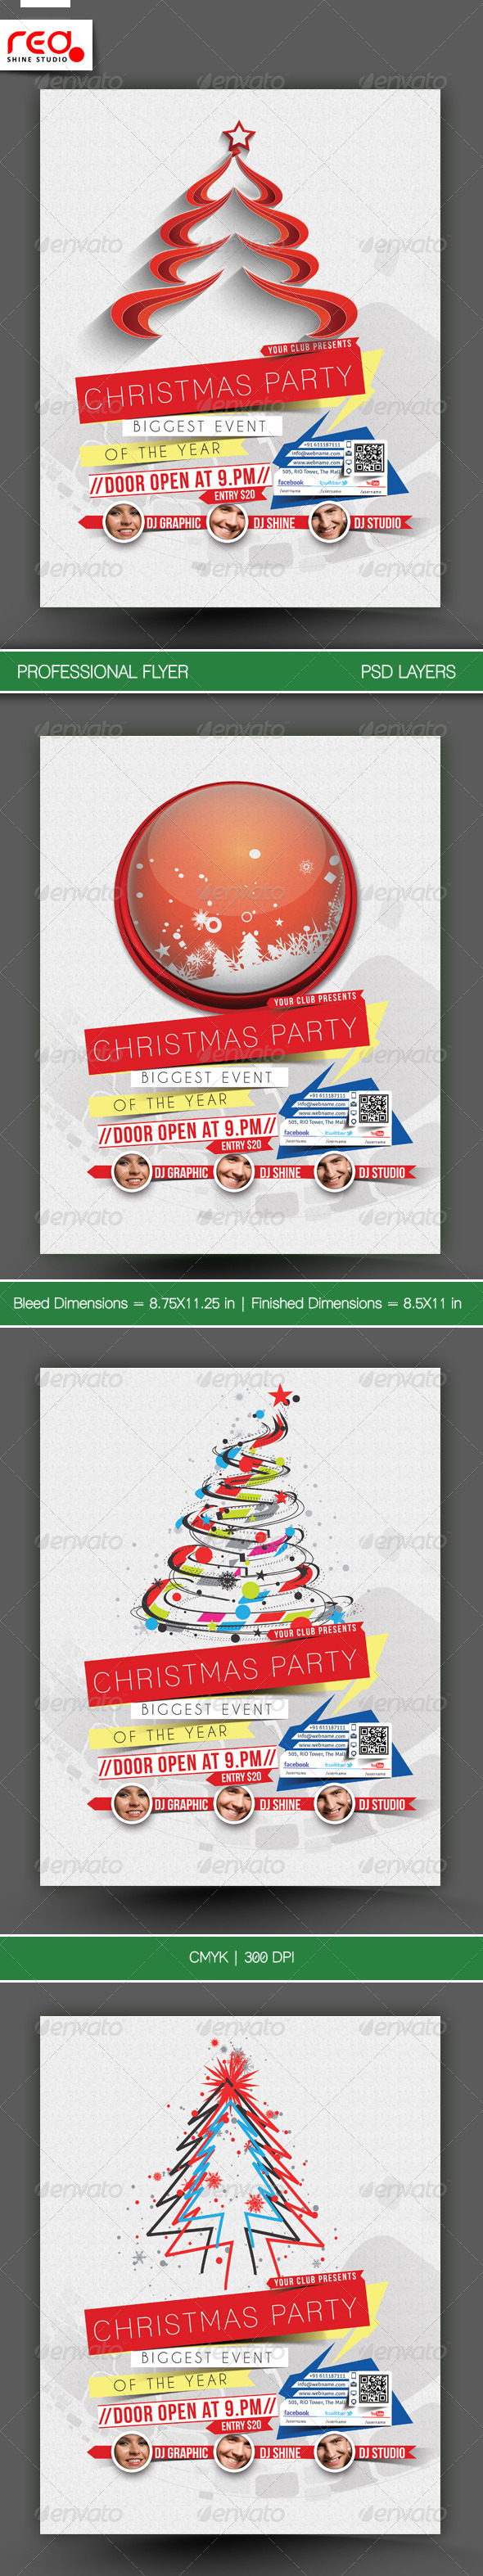 Christmas Party Flyer & Poster Template - 3 - Clubs & Parties Events